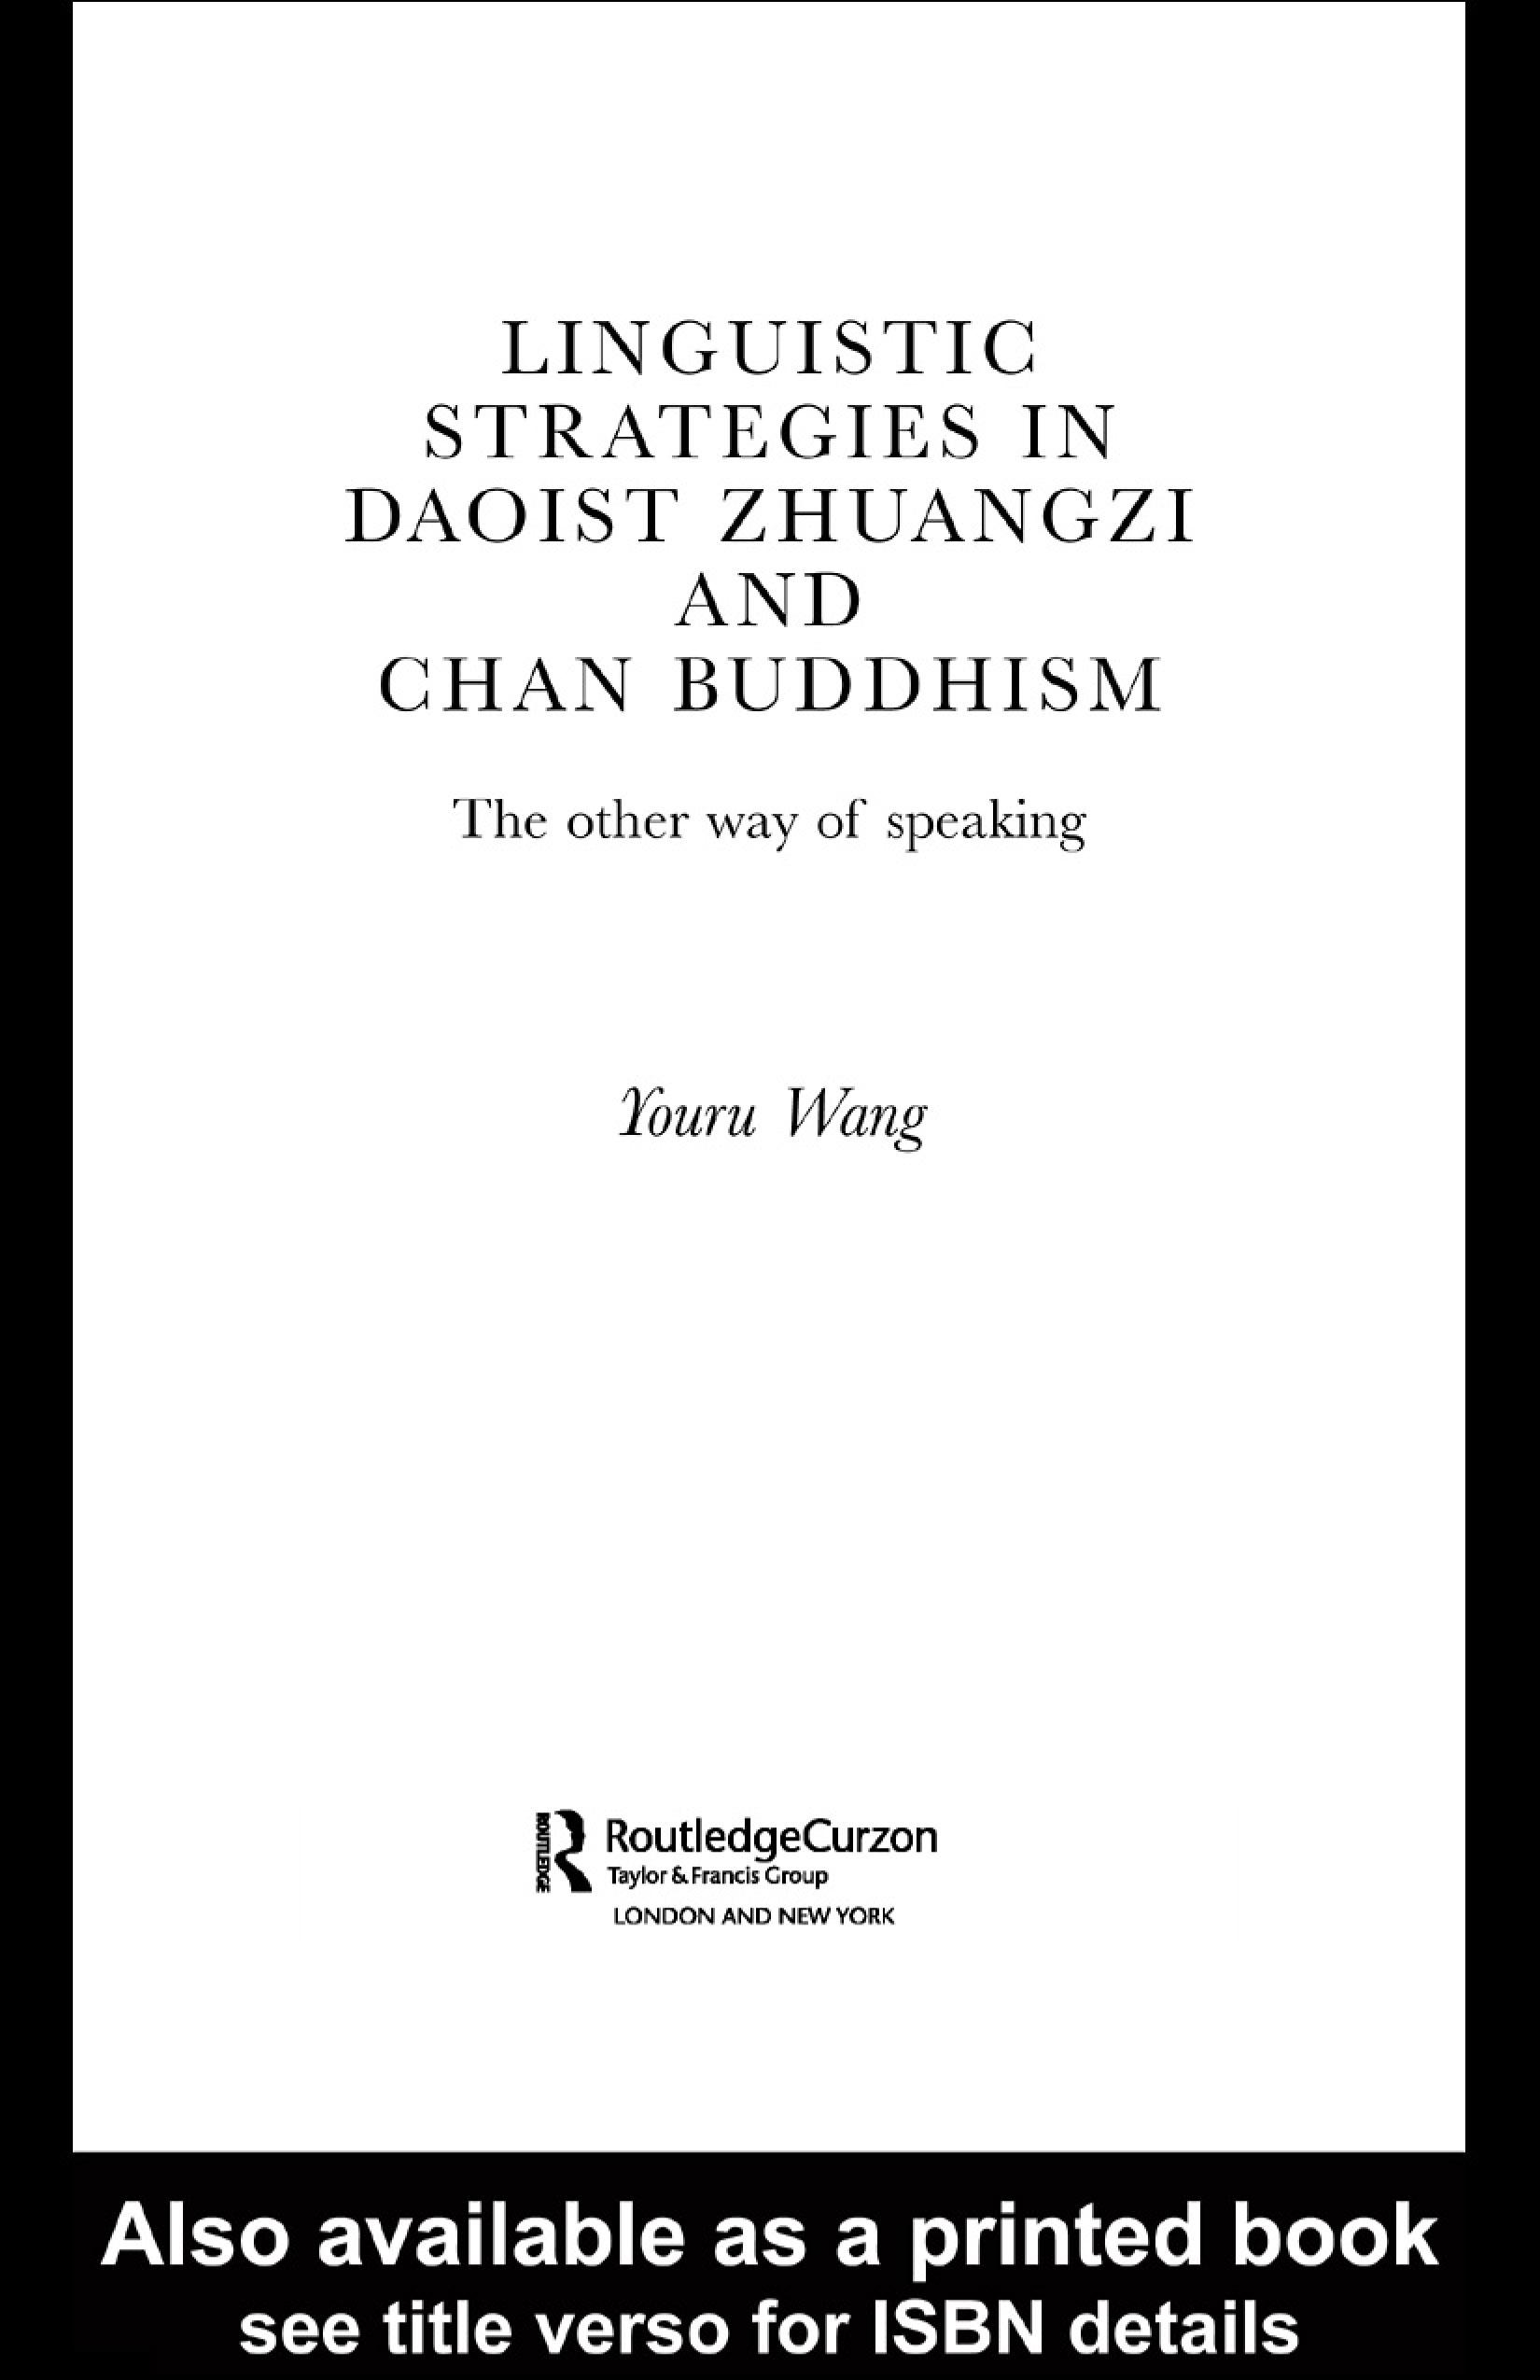 Linguistic Strategies in Daoist Zhuangzi and Chan Buddhism: The Other Way of Speaking